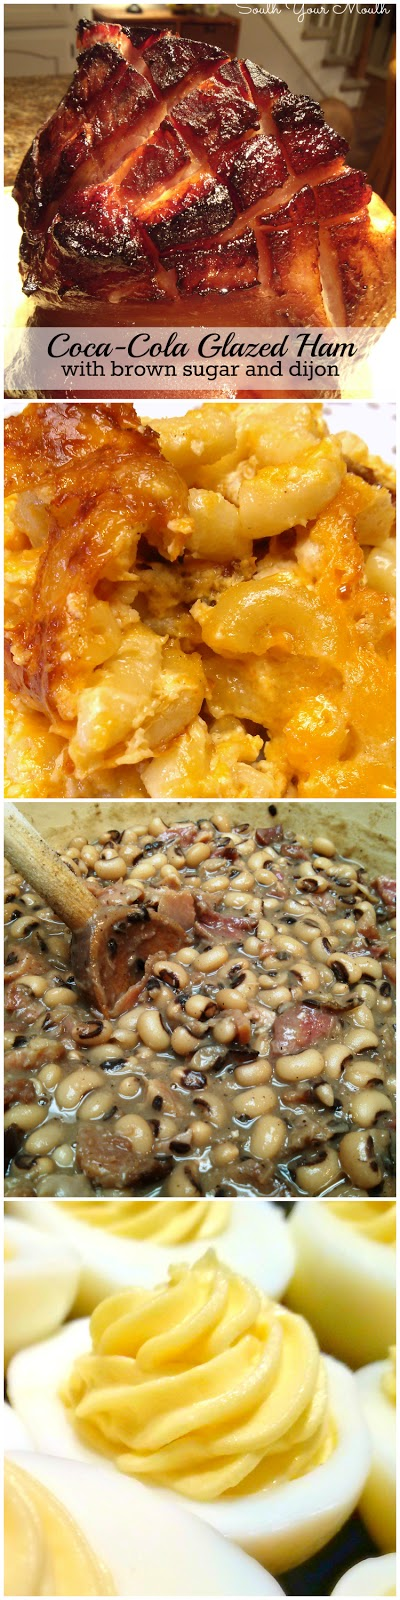 South your mouth southern christmas dinner recipes southern christmas dinner recipes coca cola glazed ham macaroni cheese black forumfinder Choice Image